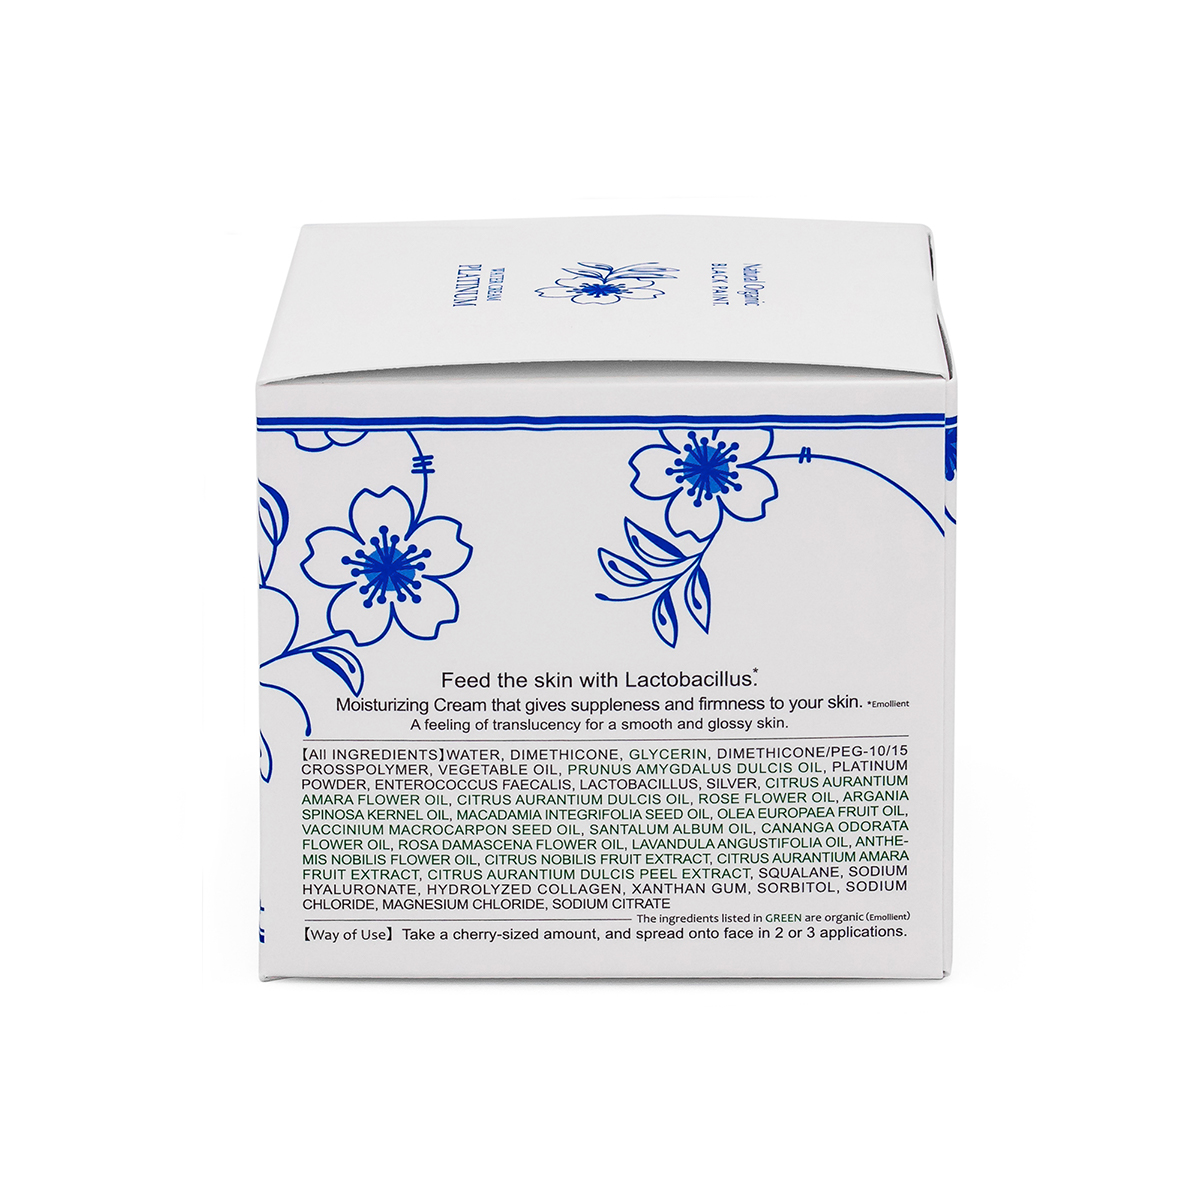 Water Cream Platinum 100g with Human Microbiome - box side 1